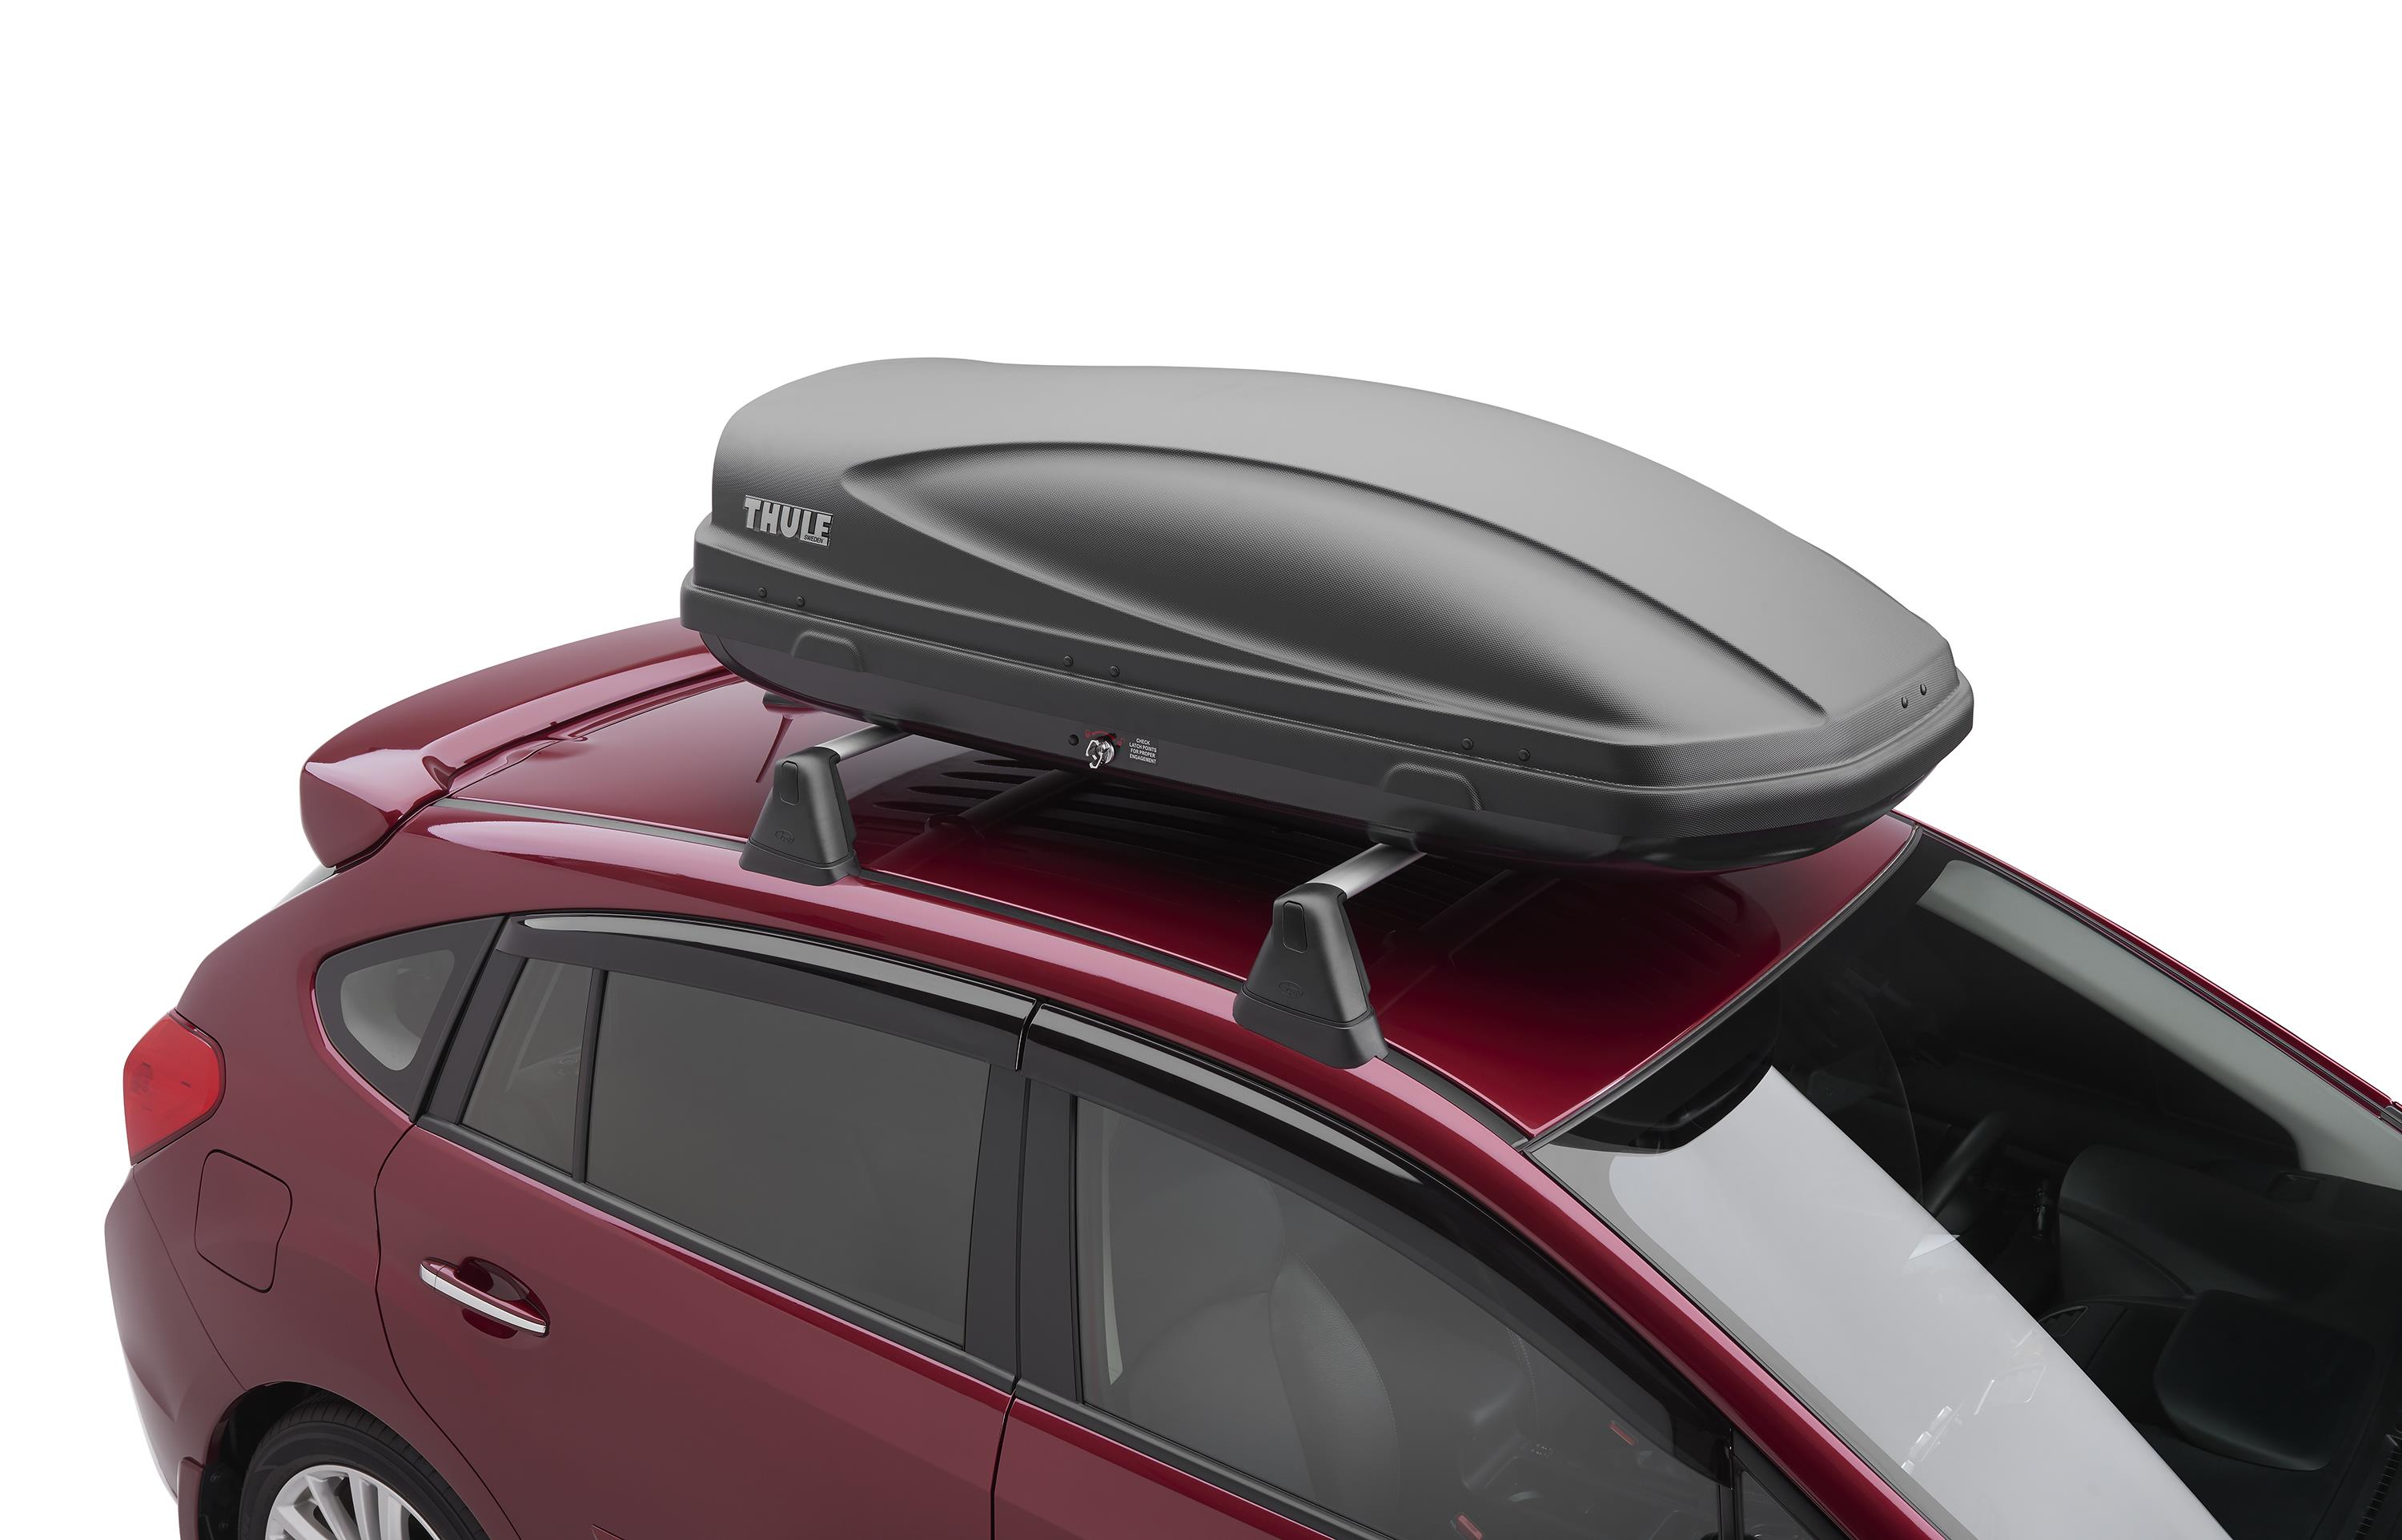 2017 subaru forester thule roof cargo carrier provides side soa567c020 liberty auto city. Black Bedroom Furniture Sets. Home Design Ideas